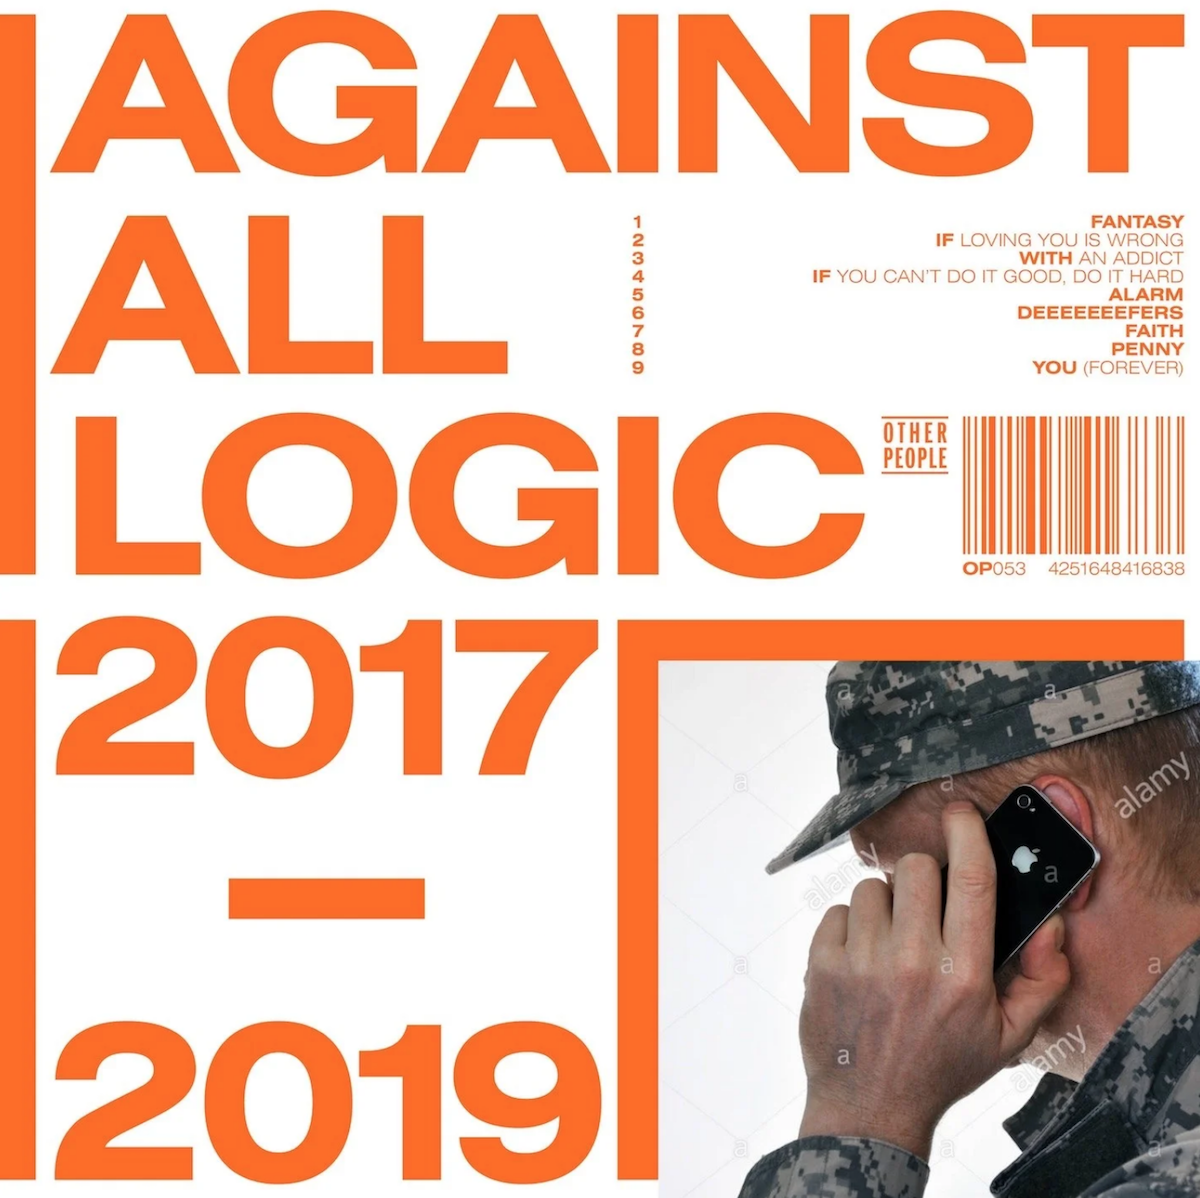 against all logic 2017 2019 artwork album Nicolas Jaars Against All Logic releases new album 2017 2019: Stream